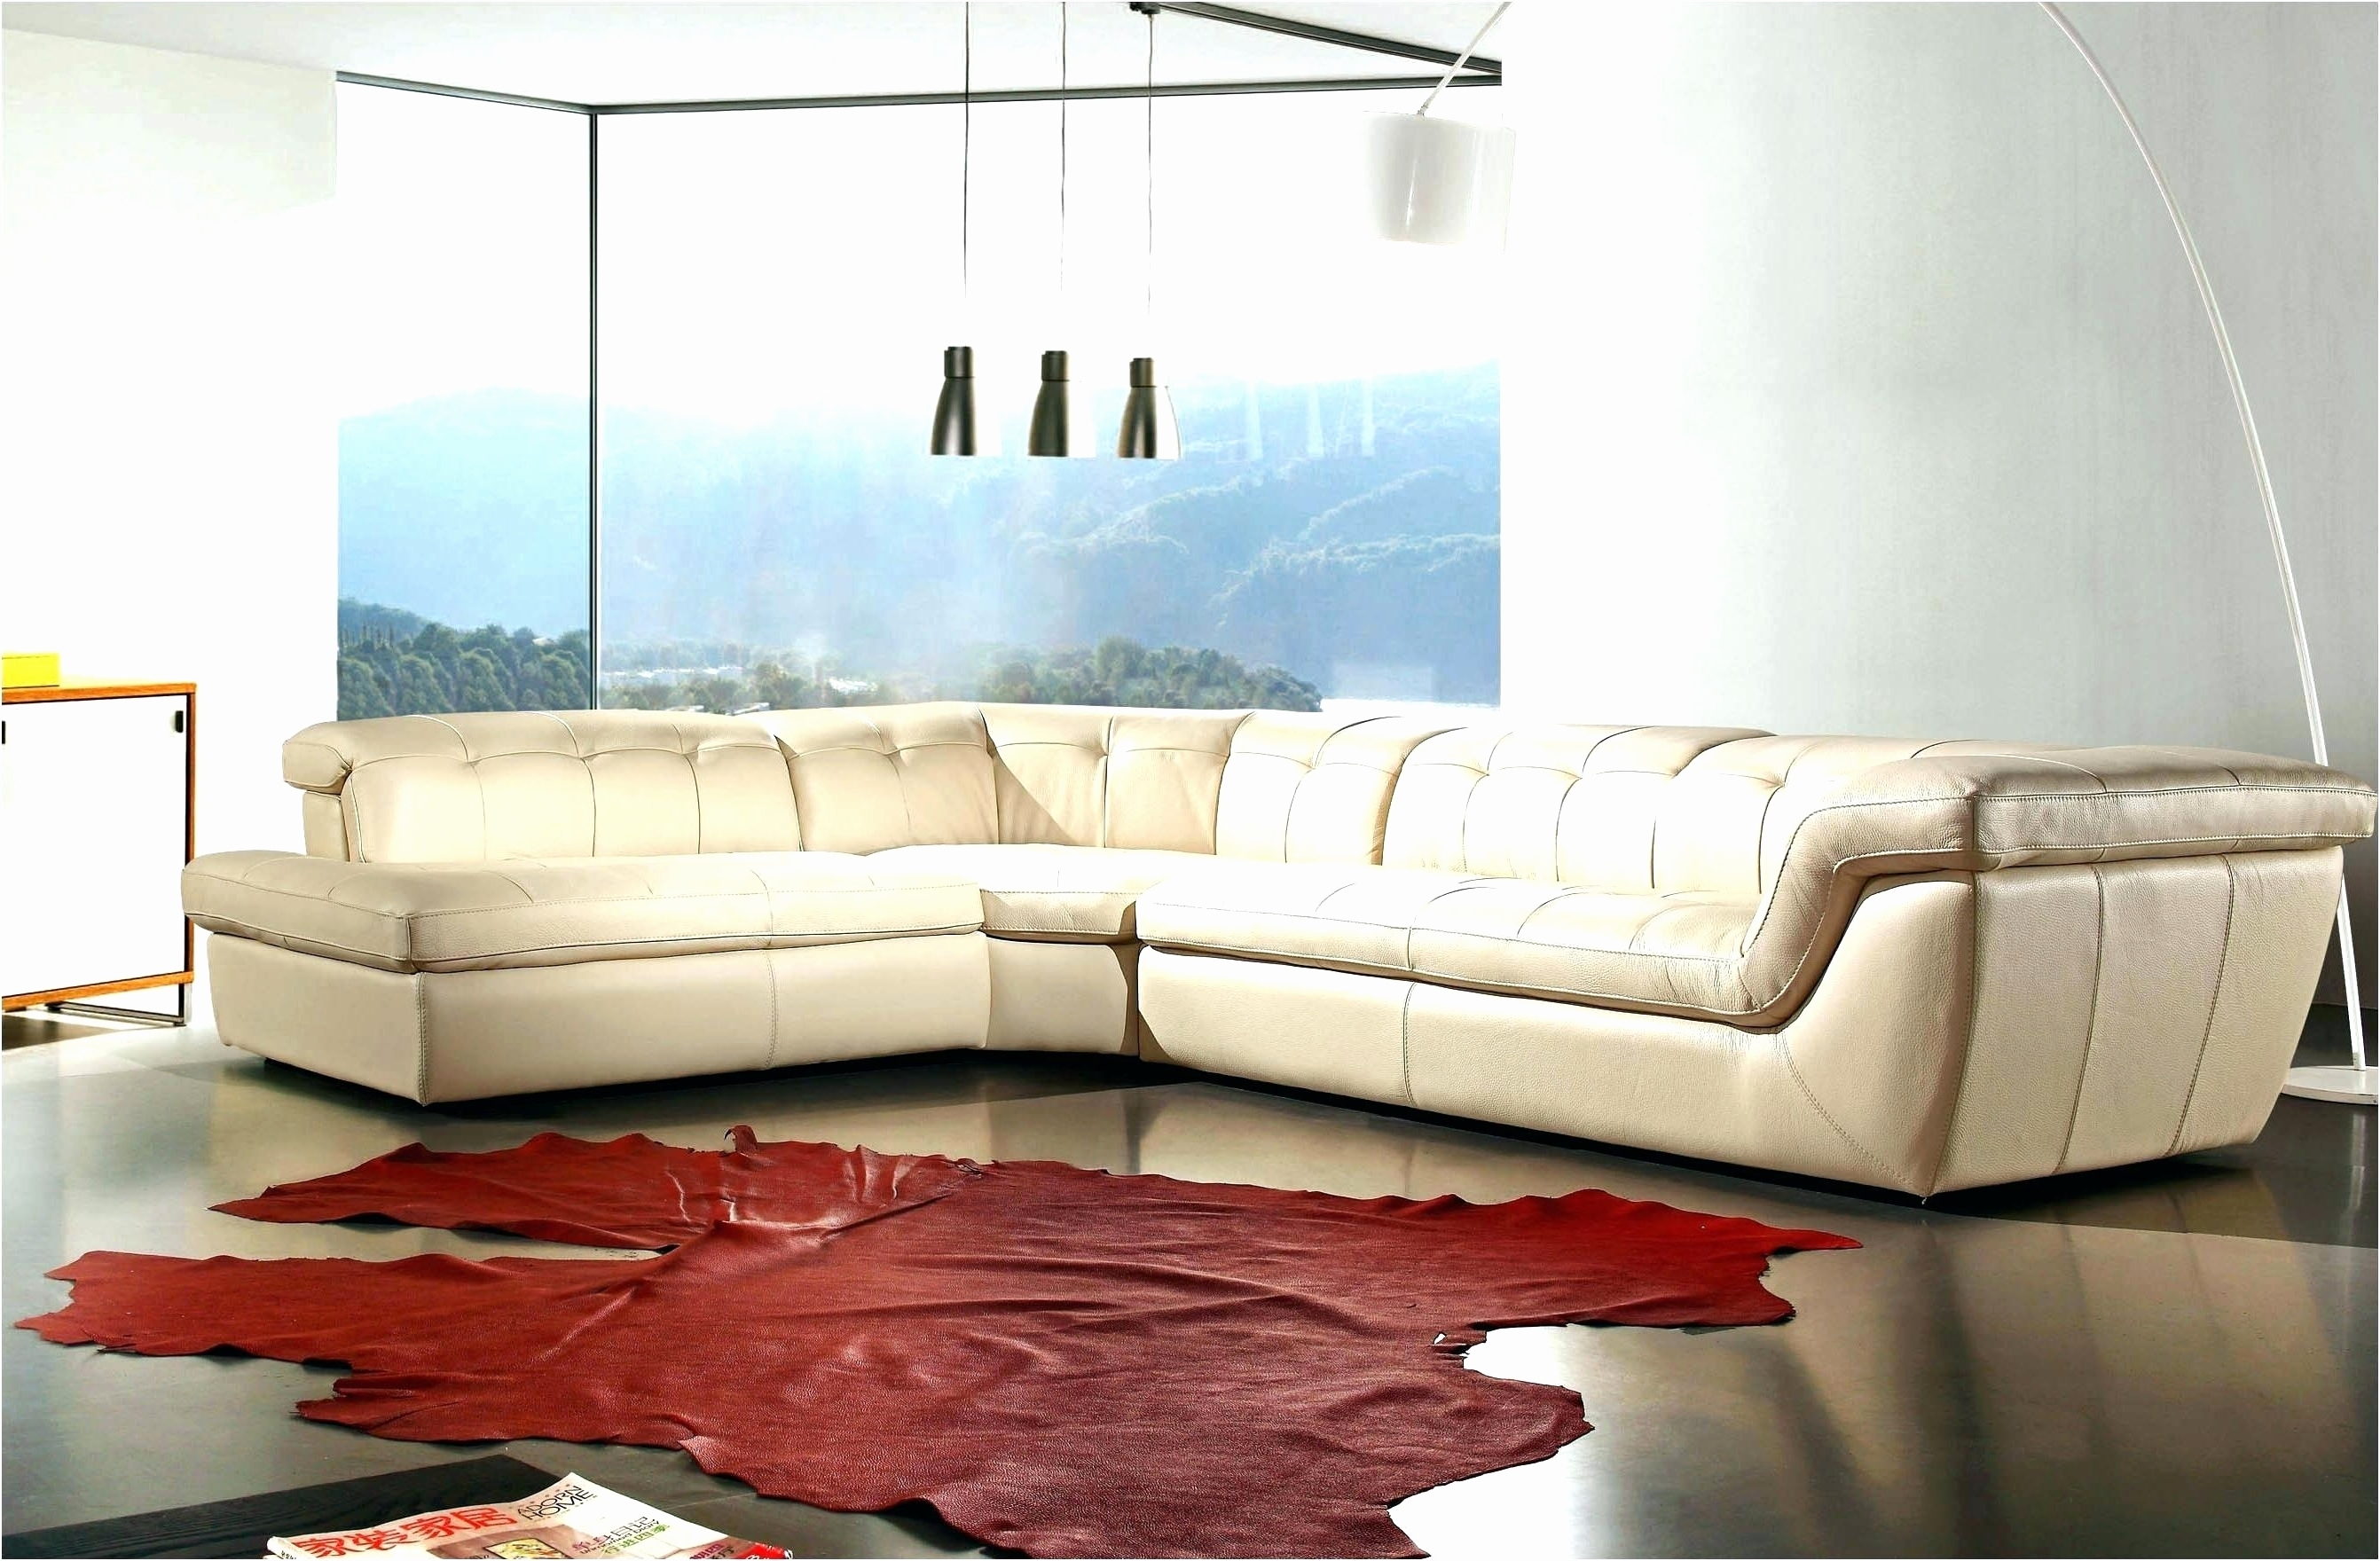 Fresh 6 Piece Microfiber Sectional Sofa 2018 – Couches And Sofas Ideas Intended For Trendy 6 Piece Leather Sectional Sofas (View 15 of 20)